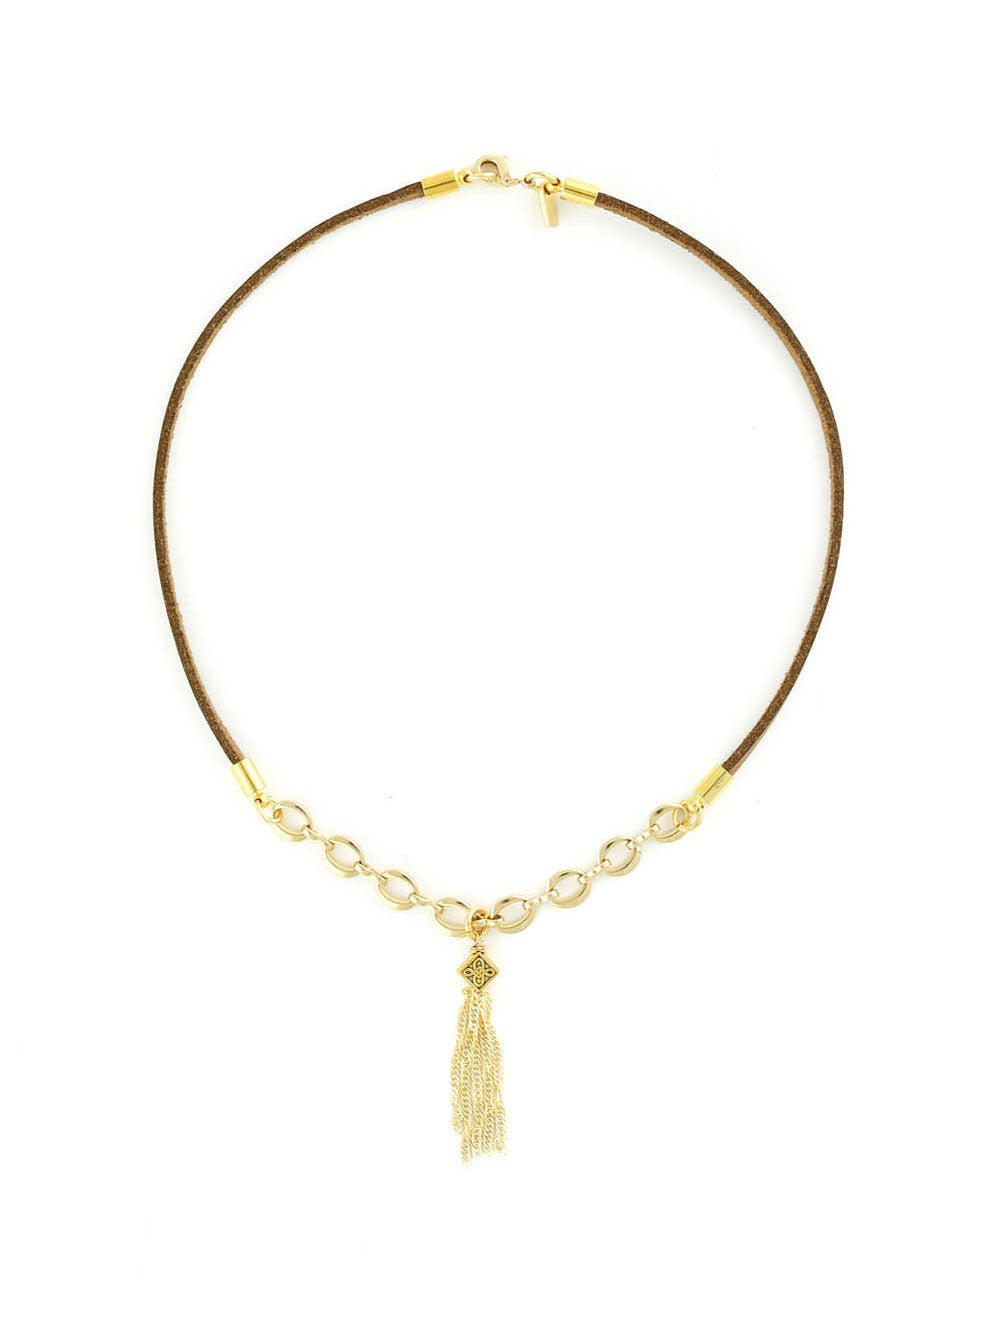 The Lone Star Gold Necklace